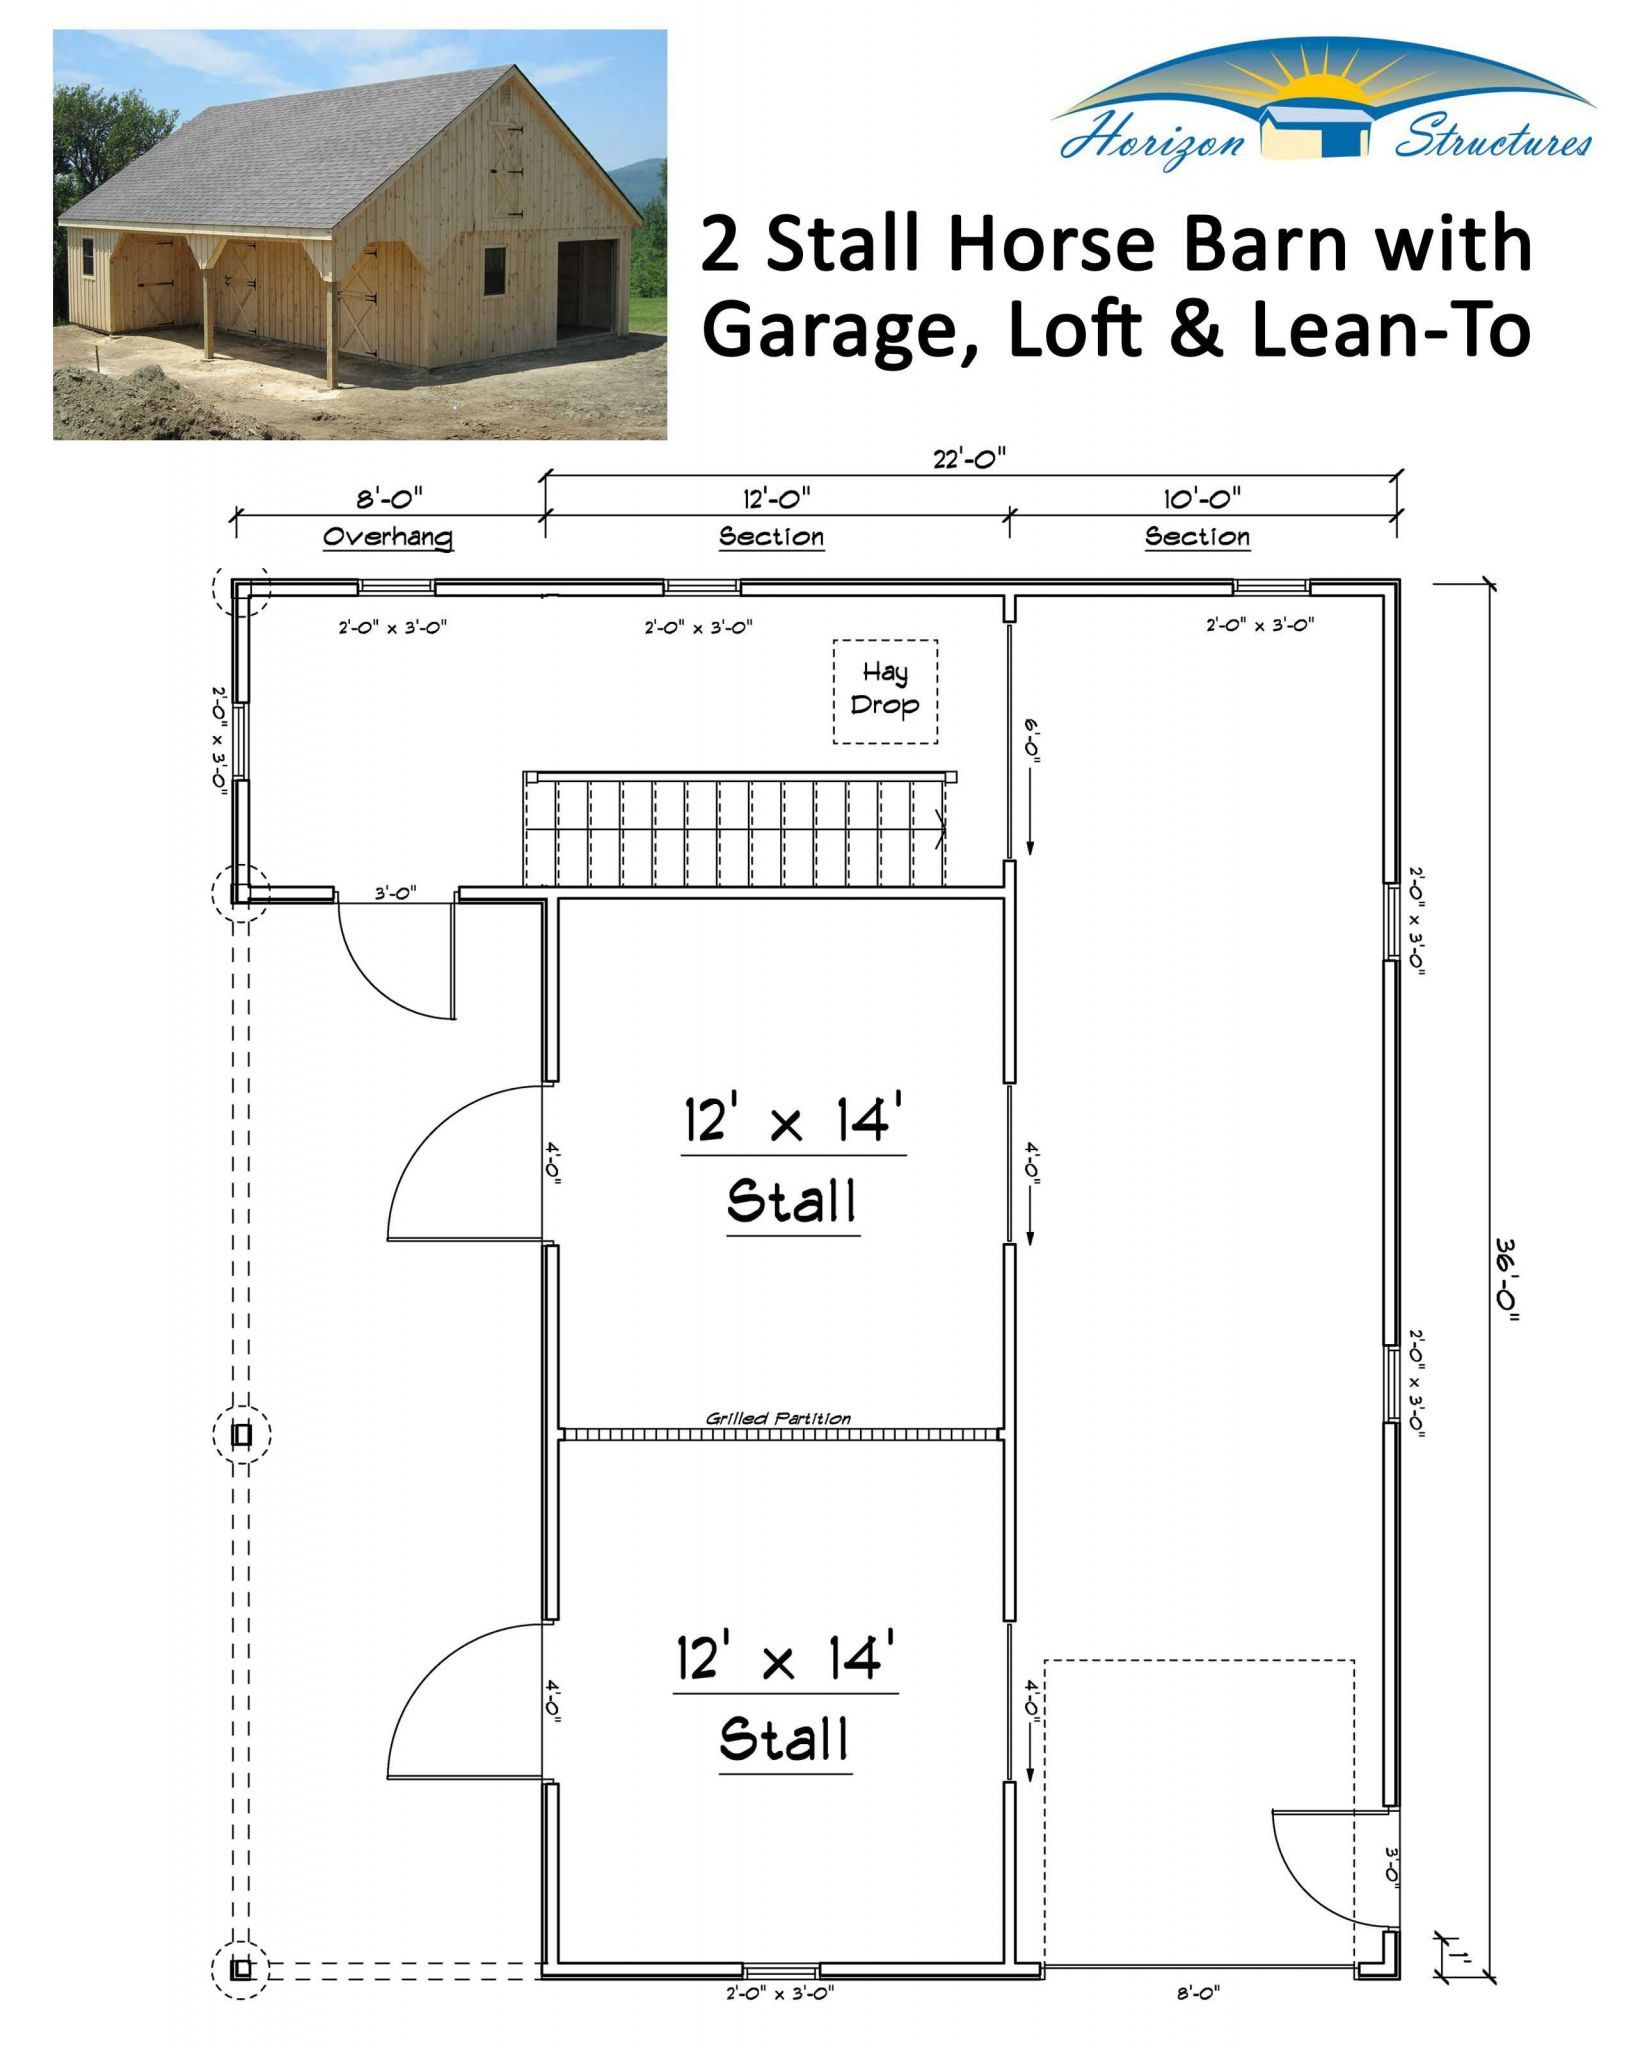 Washington State Approved House Plans Small Horse Barns Horse Barn Plans Horse Barns